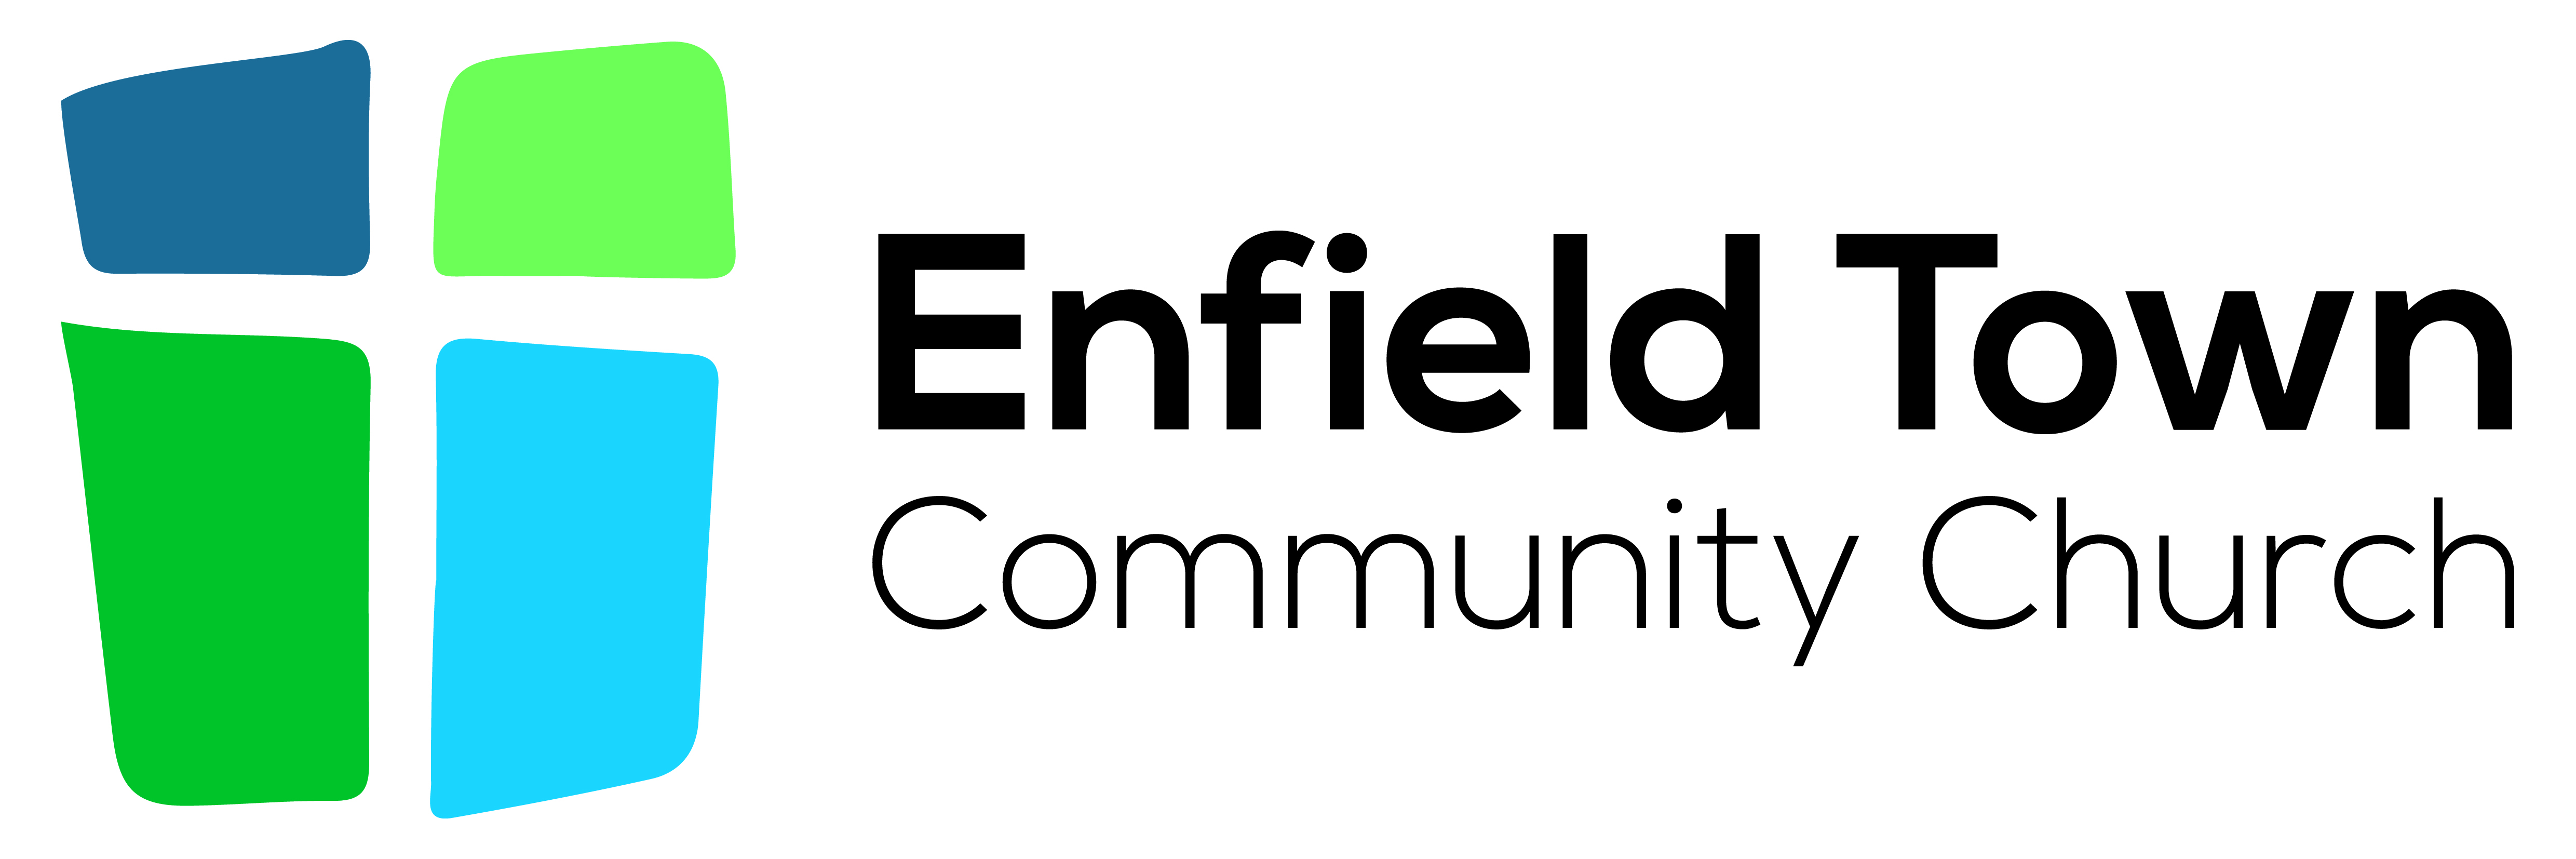 Enfield Town Community Church